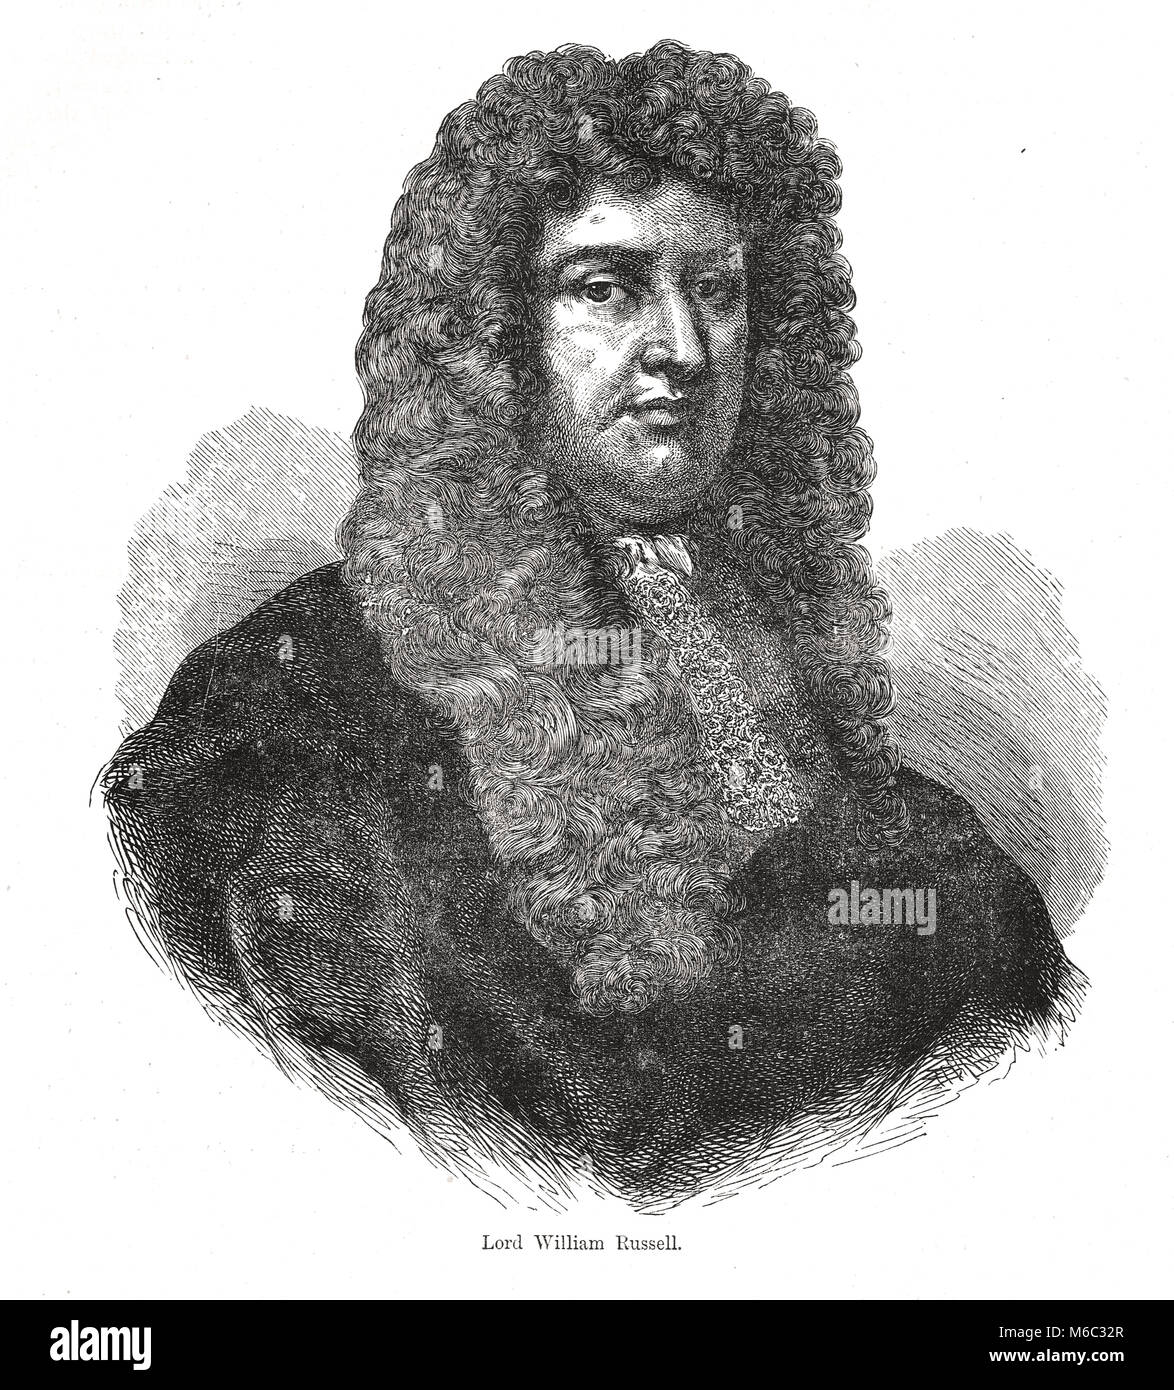 William Russell, Lord Russell, 1639 –1683 - Stock Image